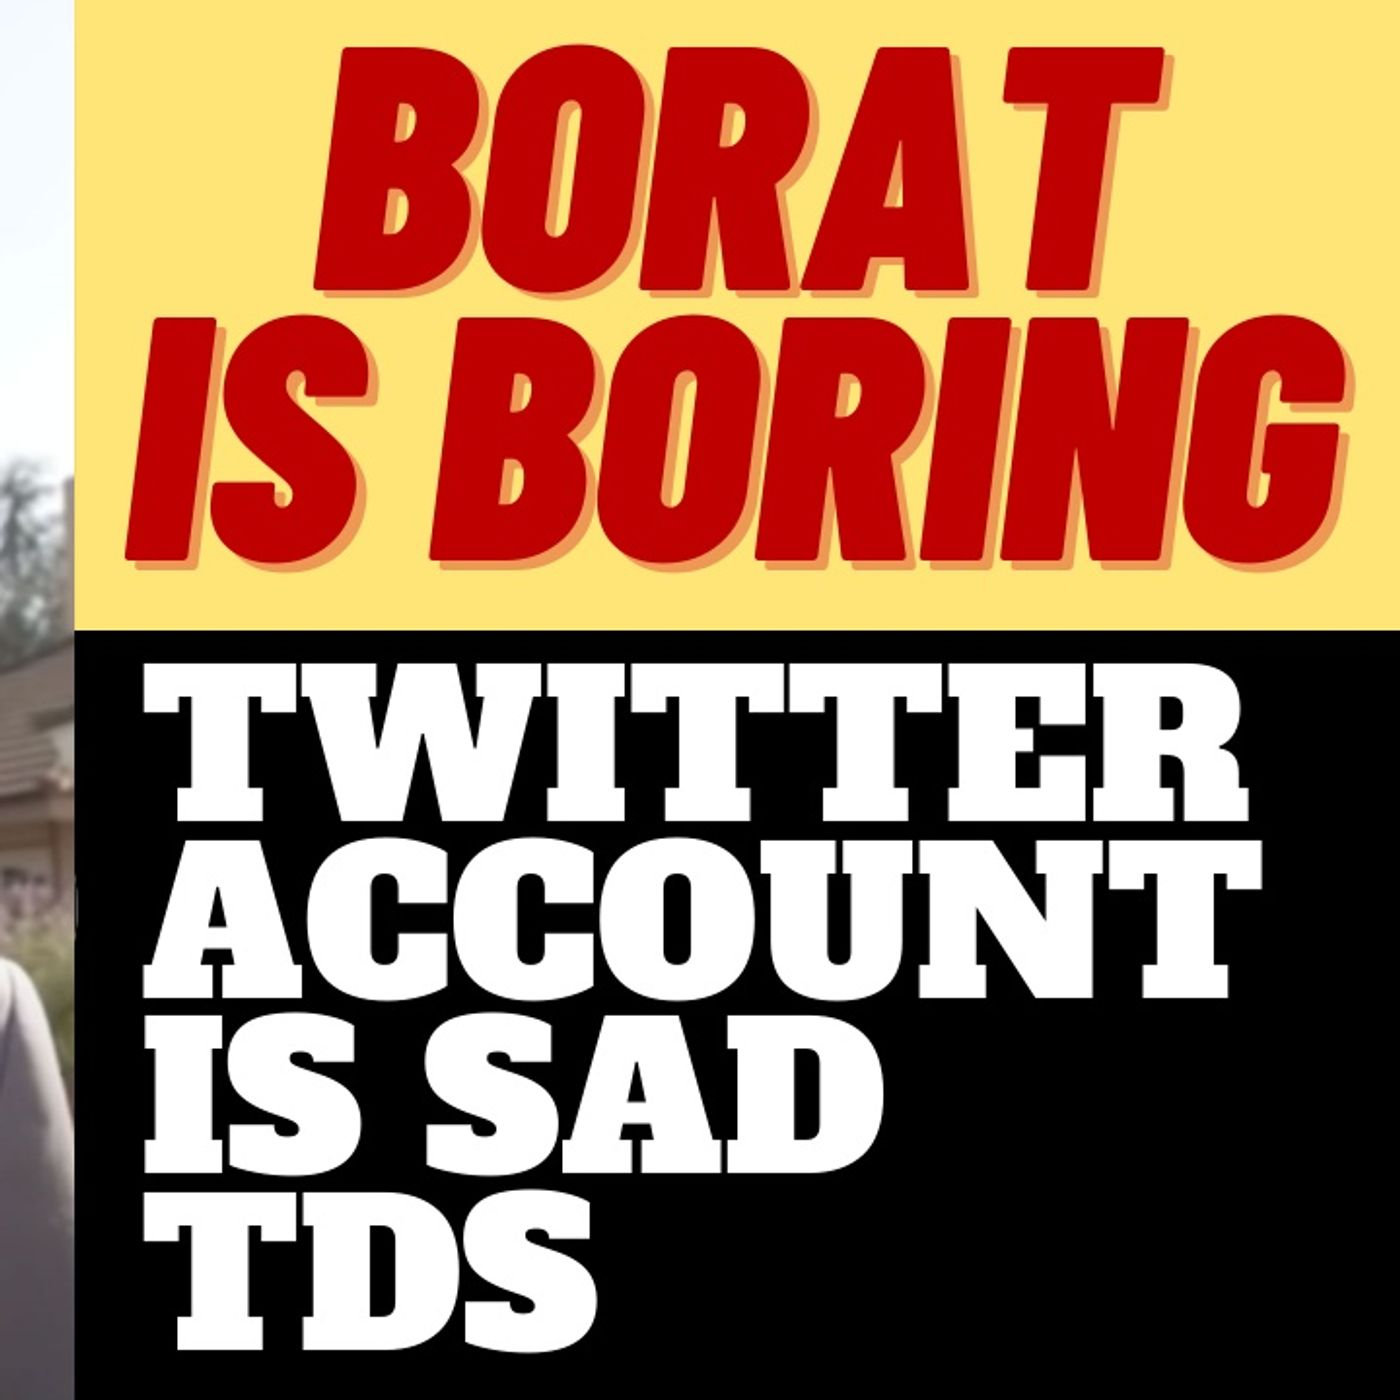 BORAT'S LAME TWITTER ACCOUNT DOESN'T BODE WELL